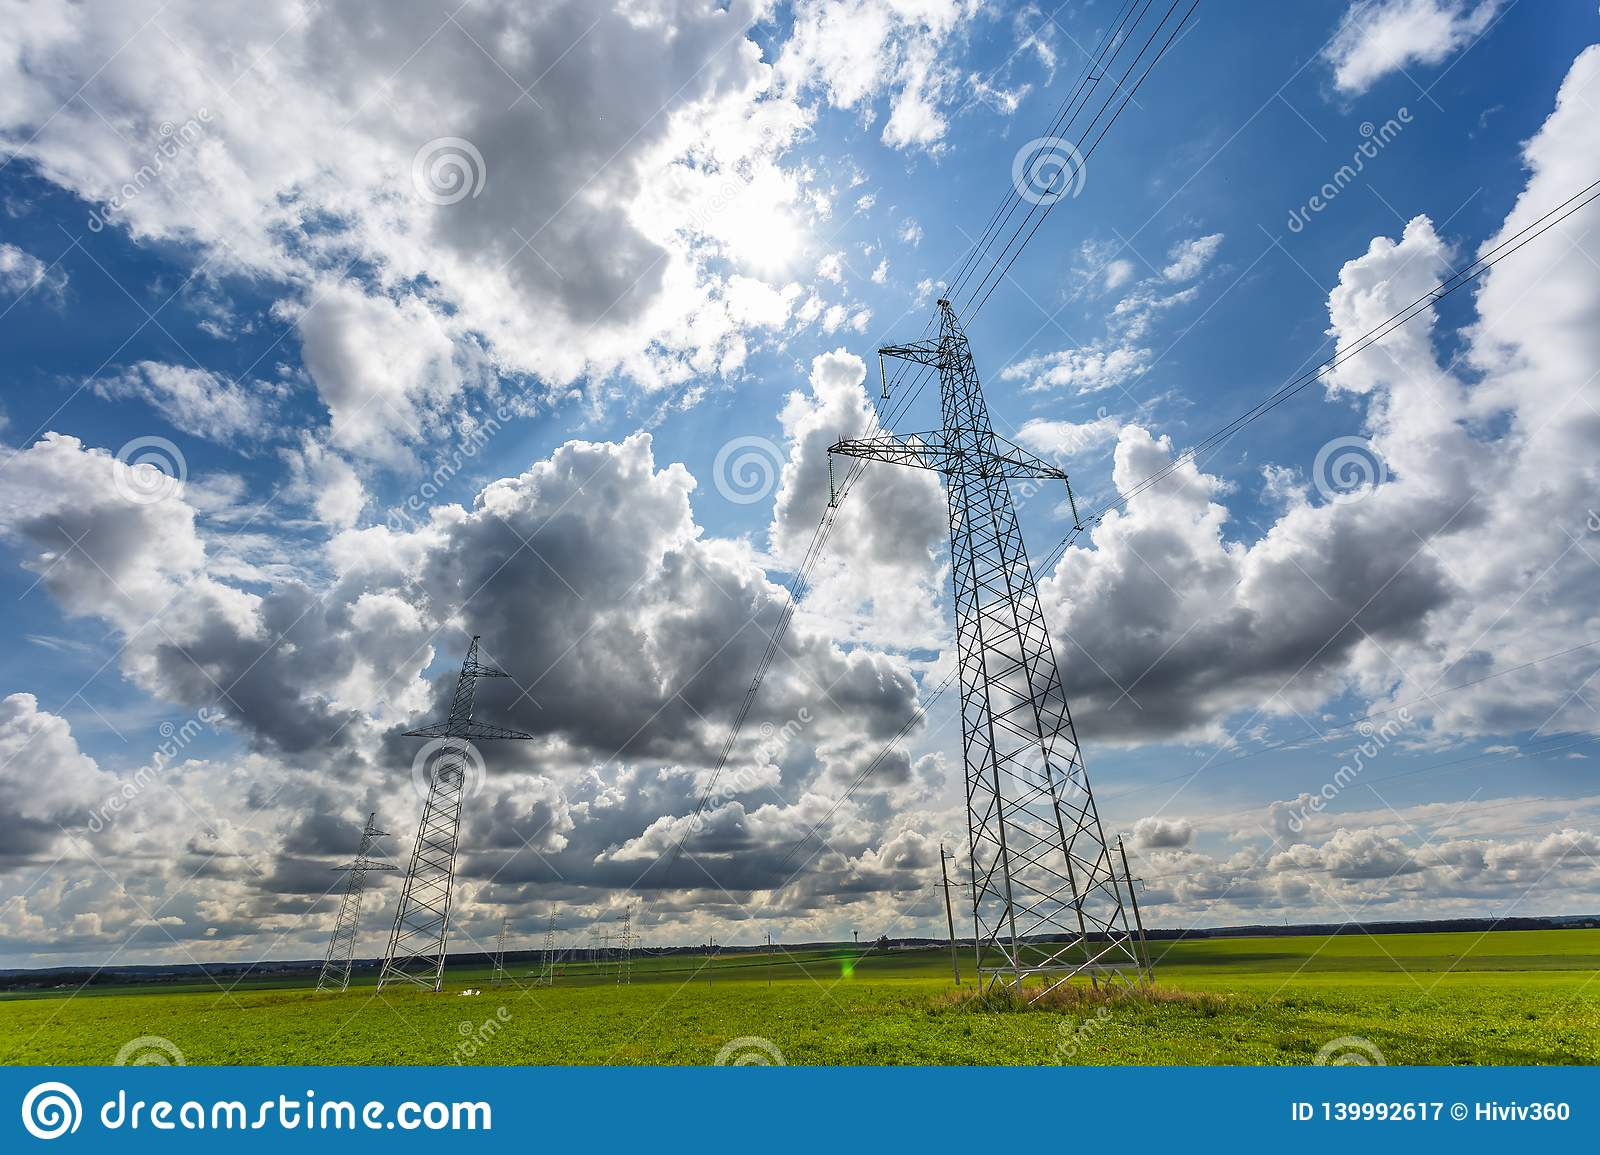 Silhouette of the high voltage electric pylon towers on the background of beautiful clouds